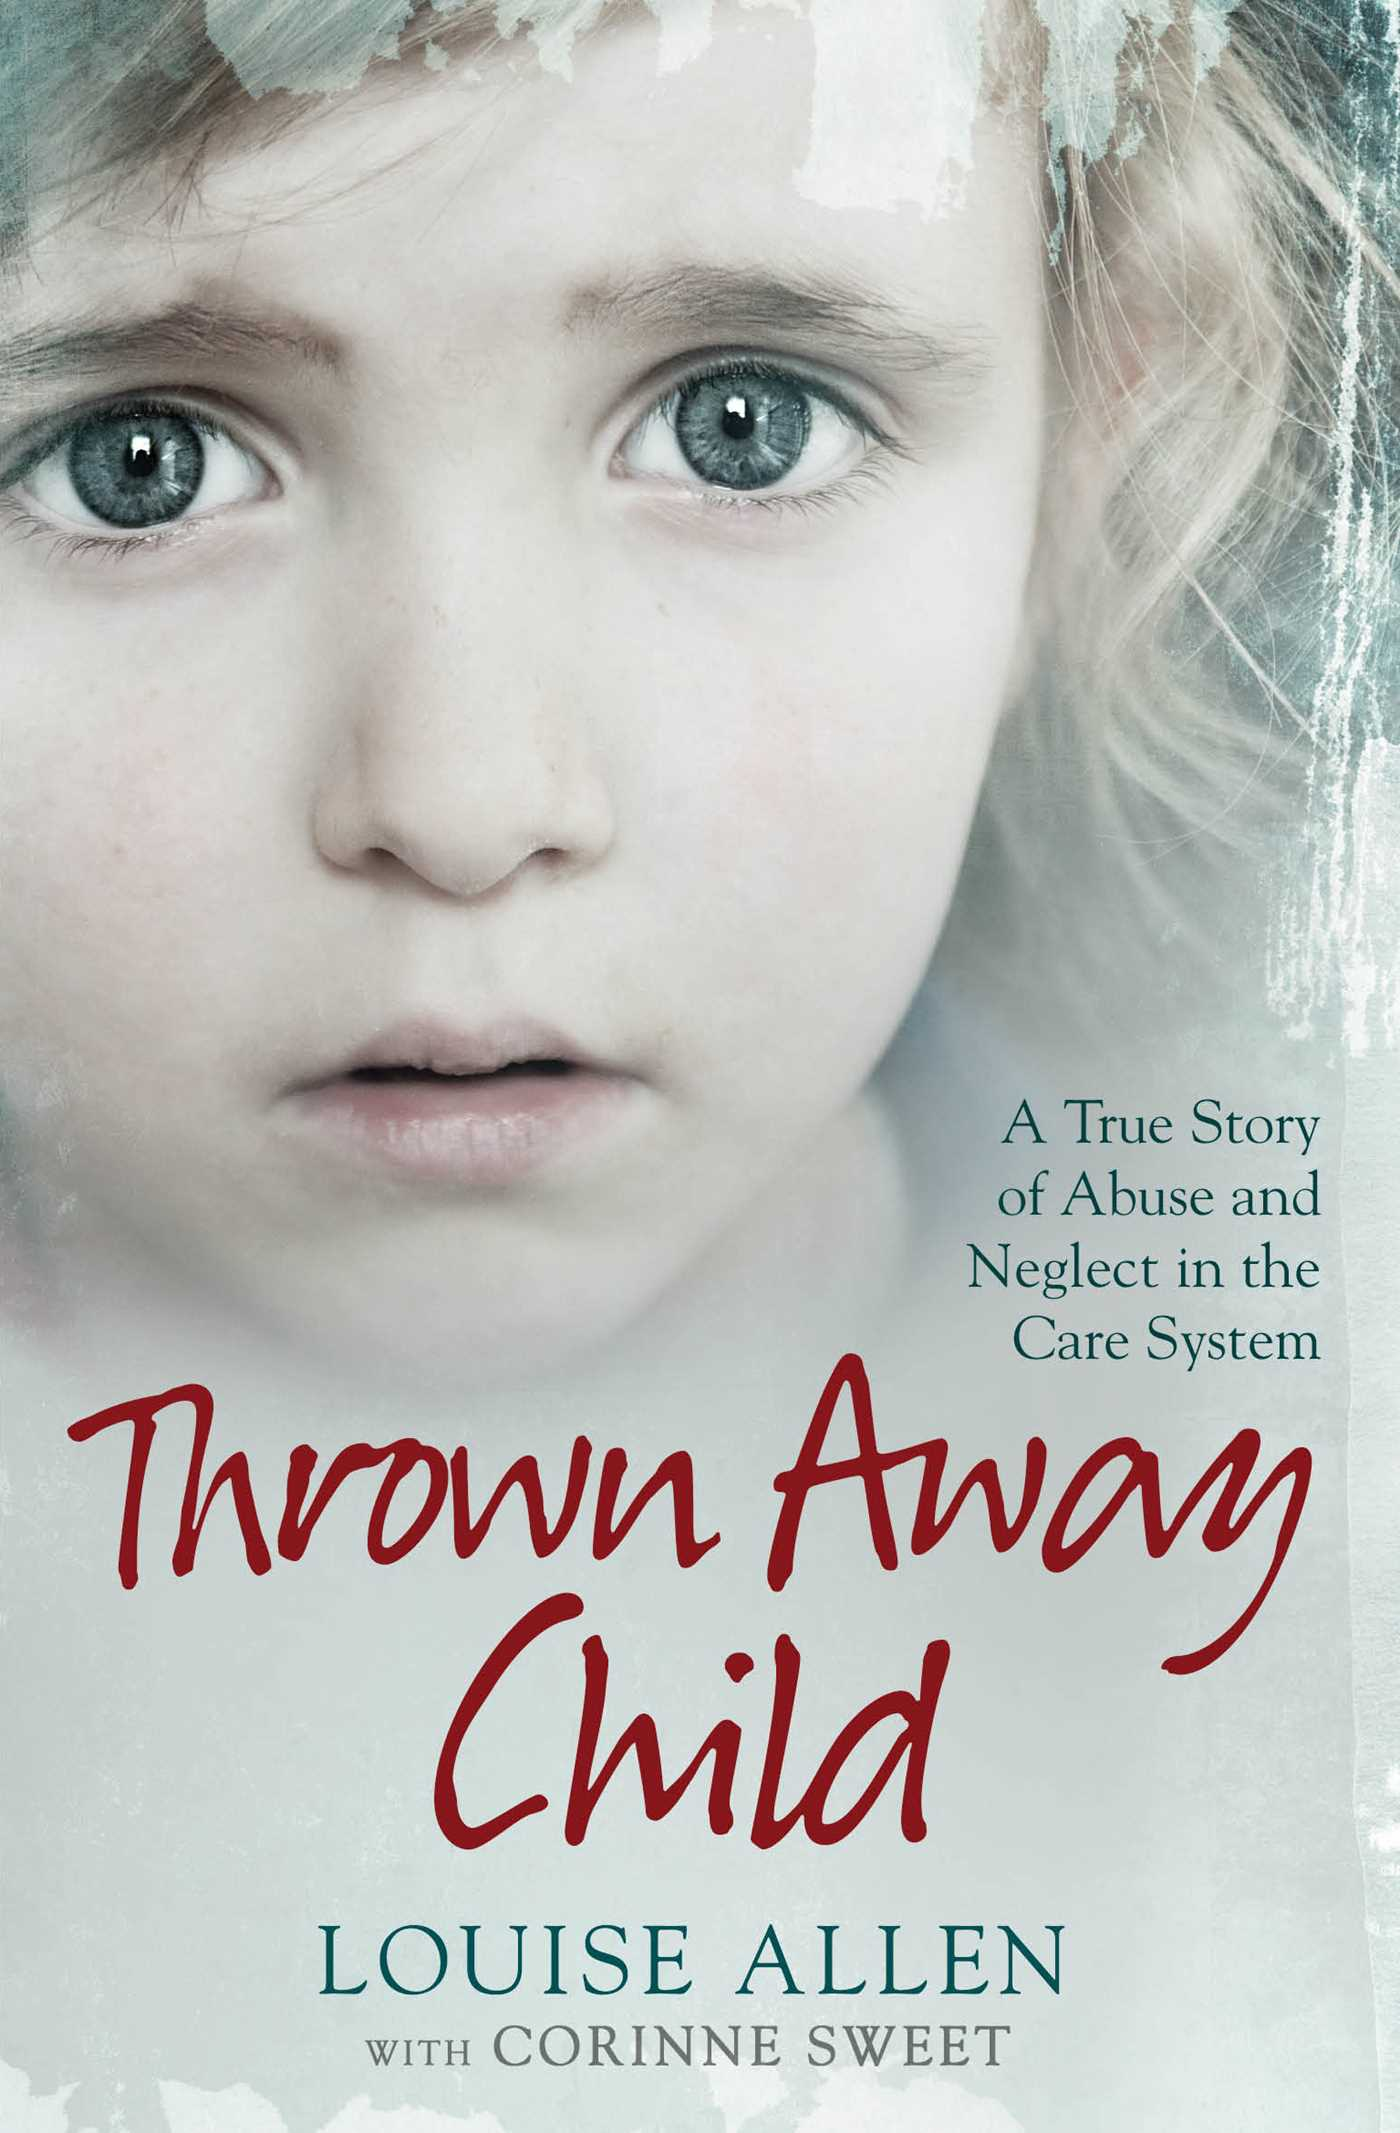 Thrown away child 9781471166754 hr